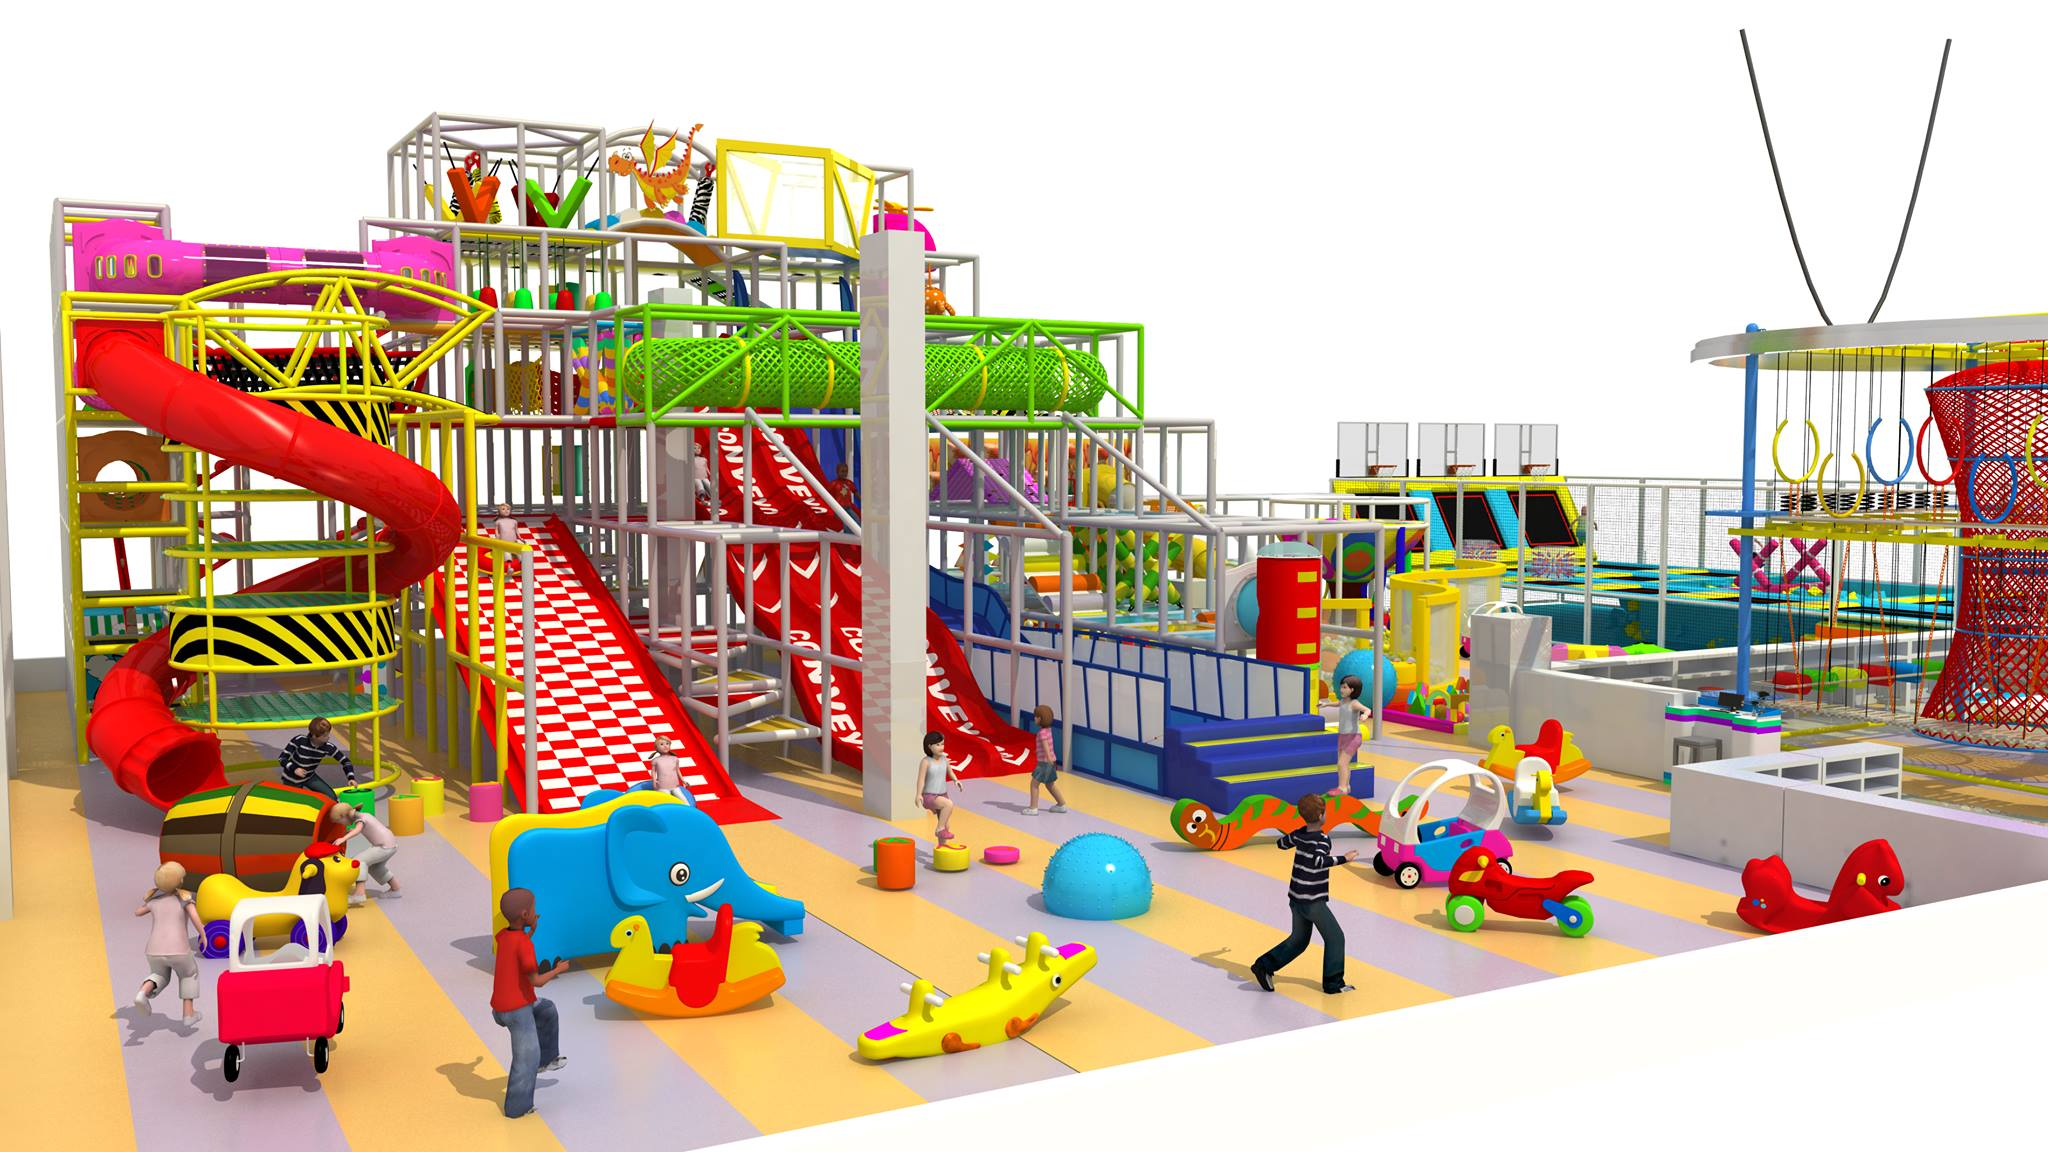 Commercial Indoor Playgounds and Play Equipment new 2018